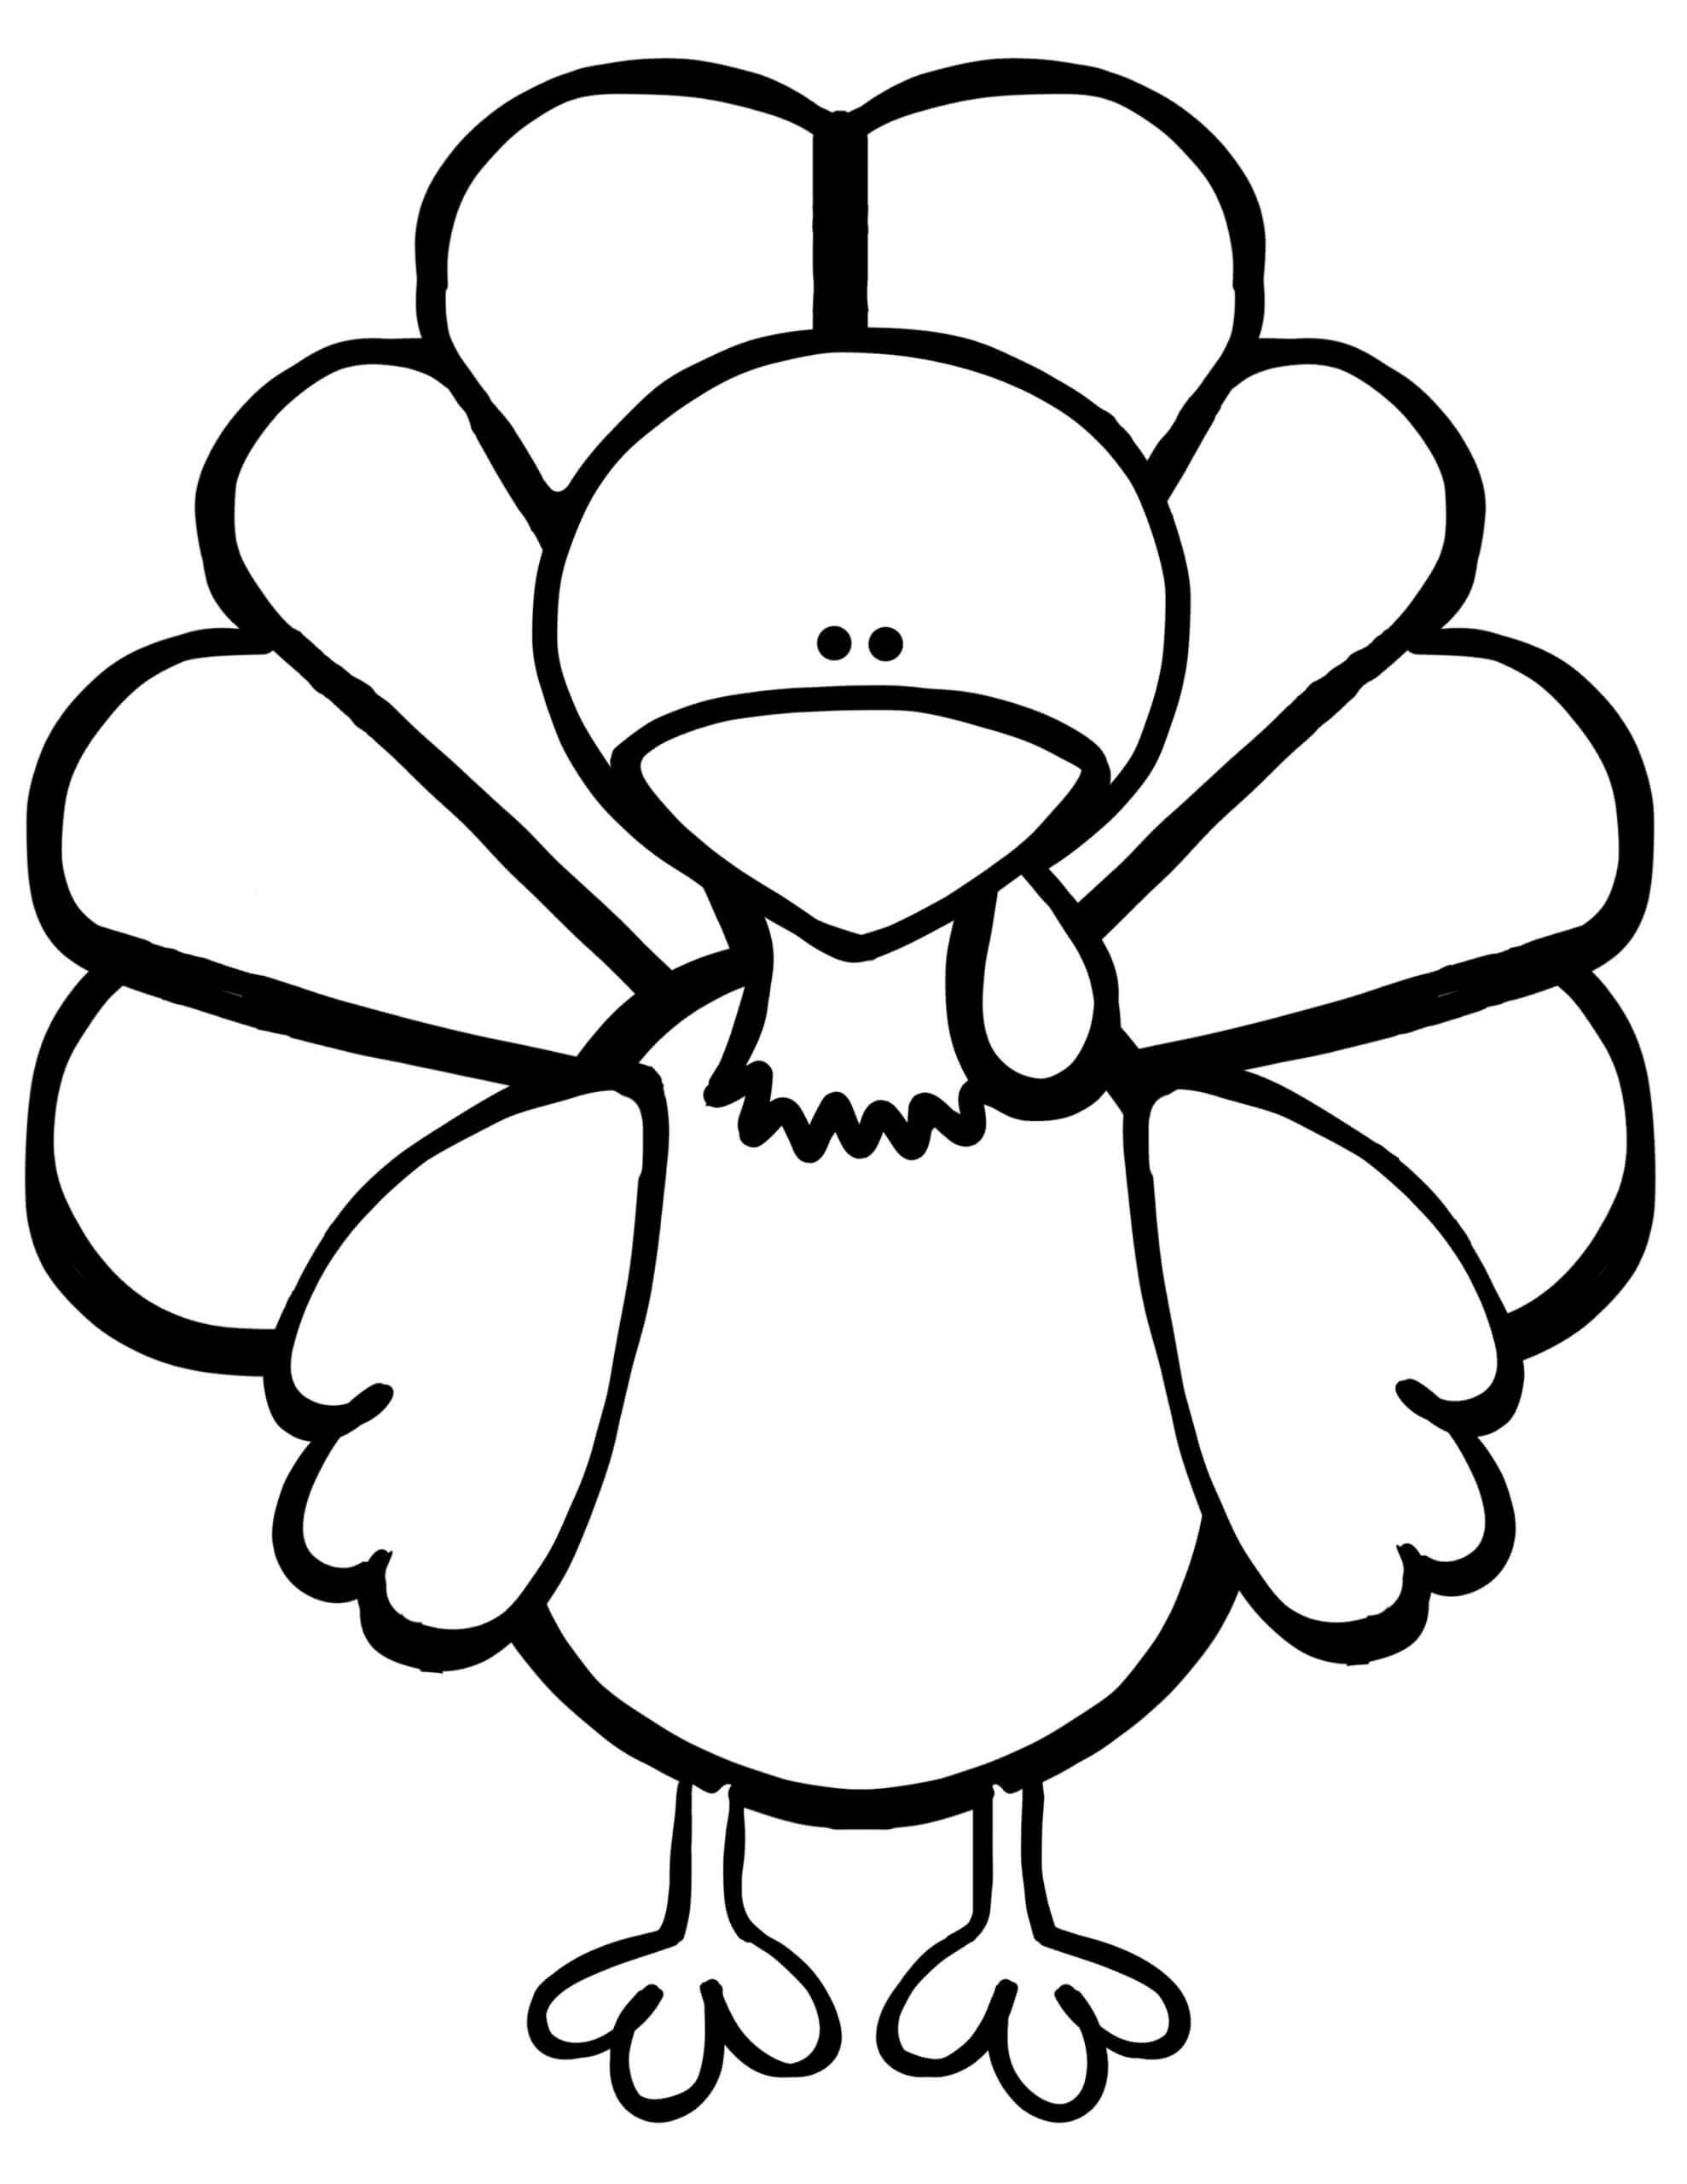 Everything You Need For The Turkey Disguise Project - Kids Inside Blank Turkey Template